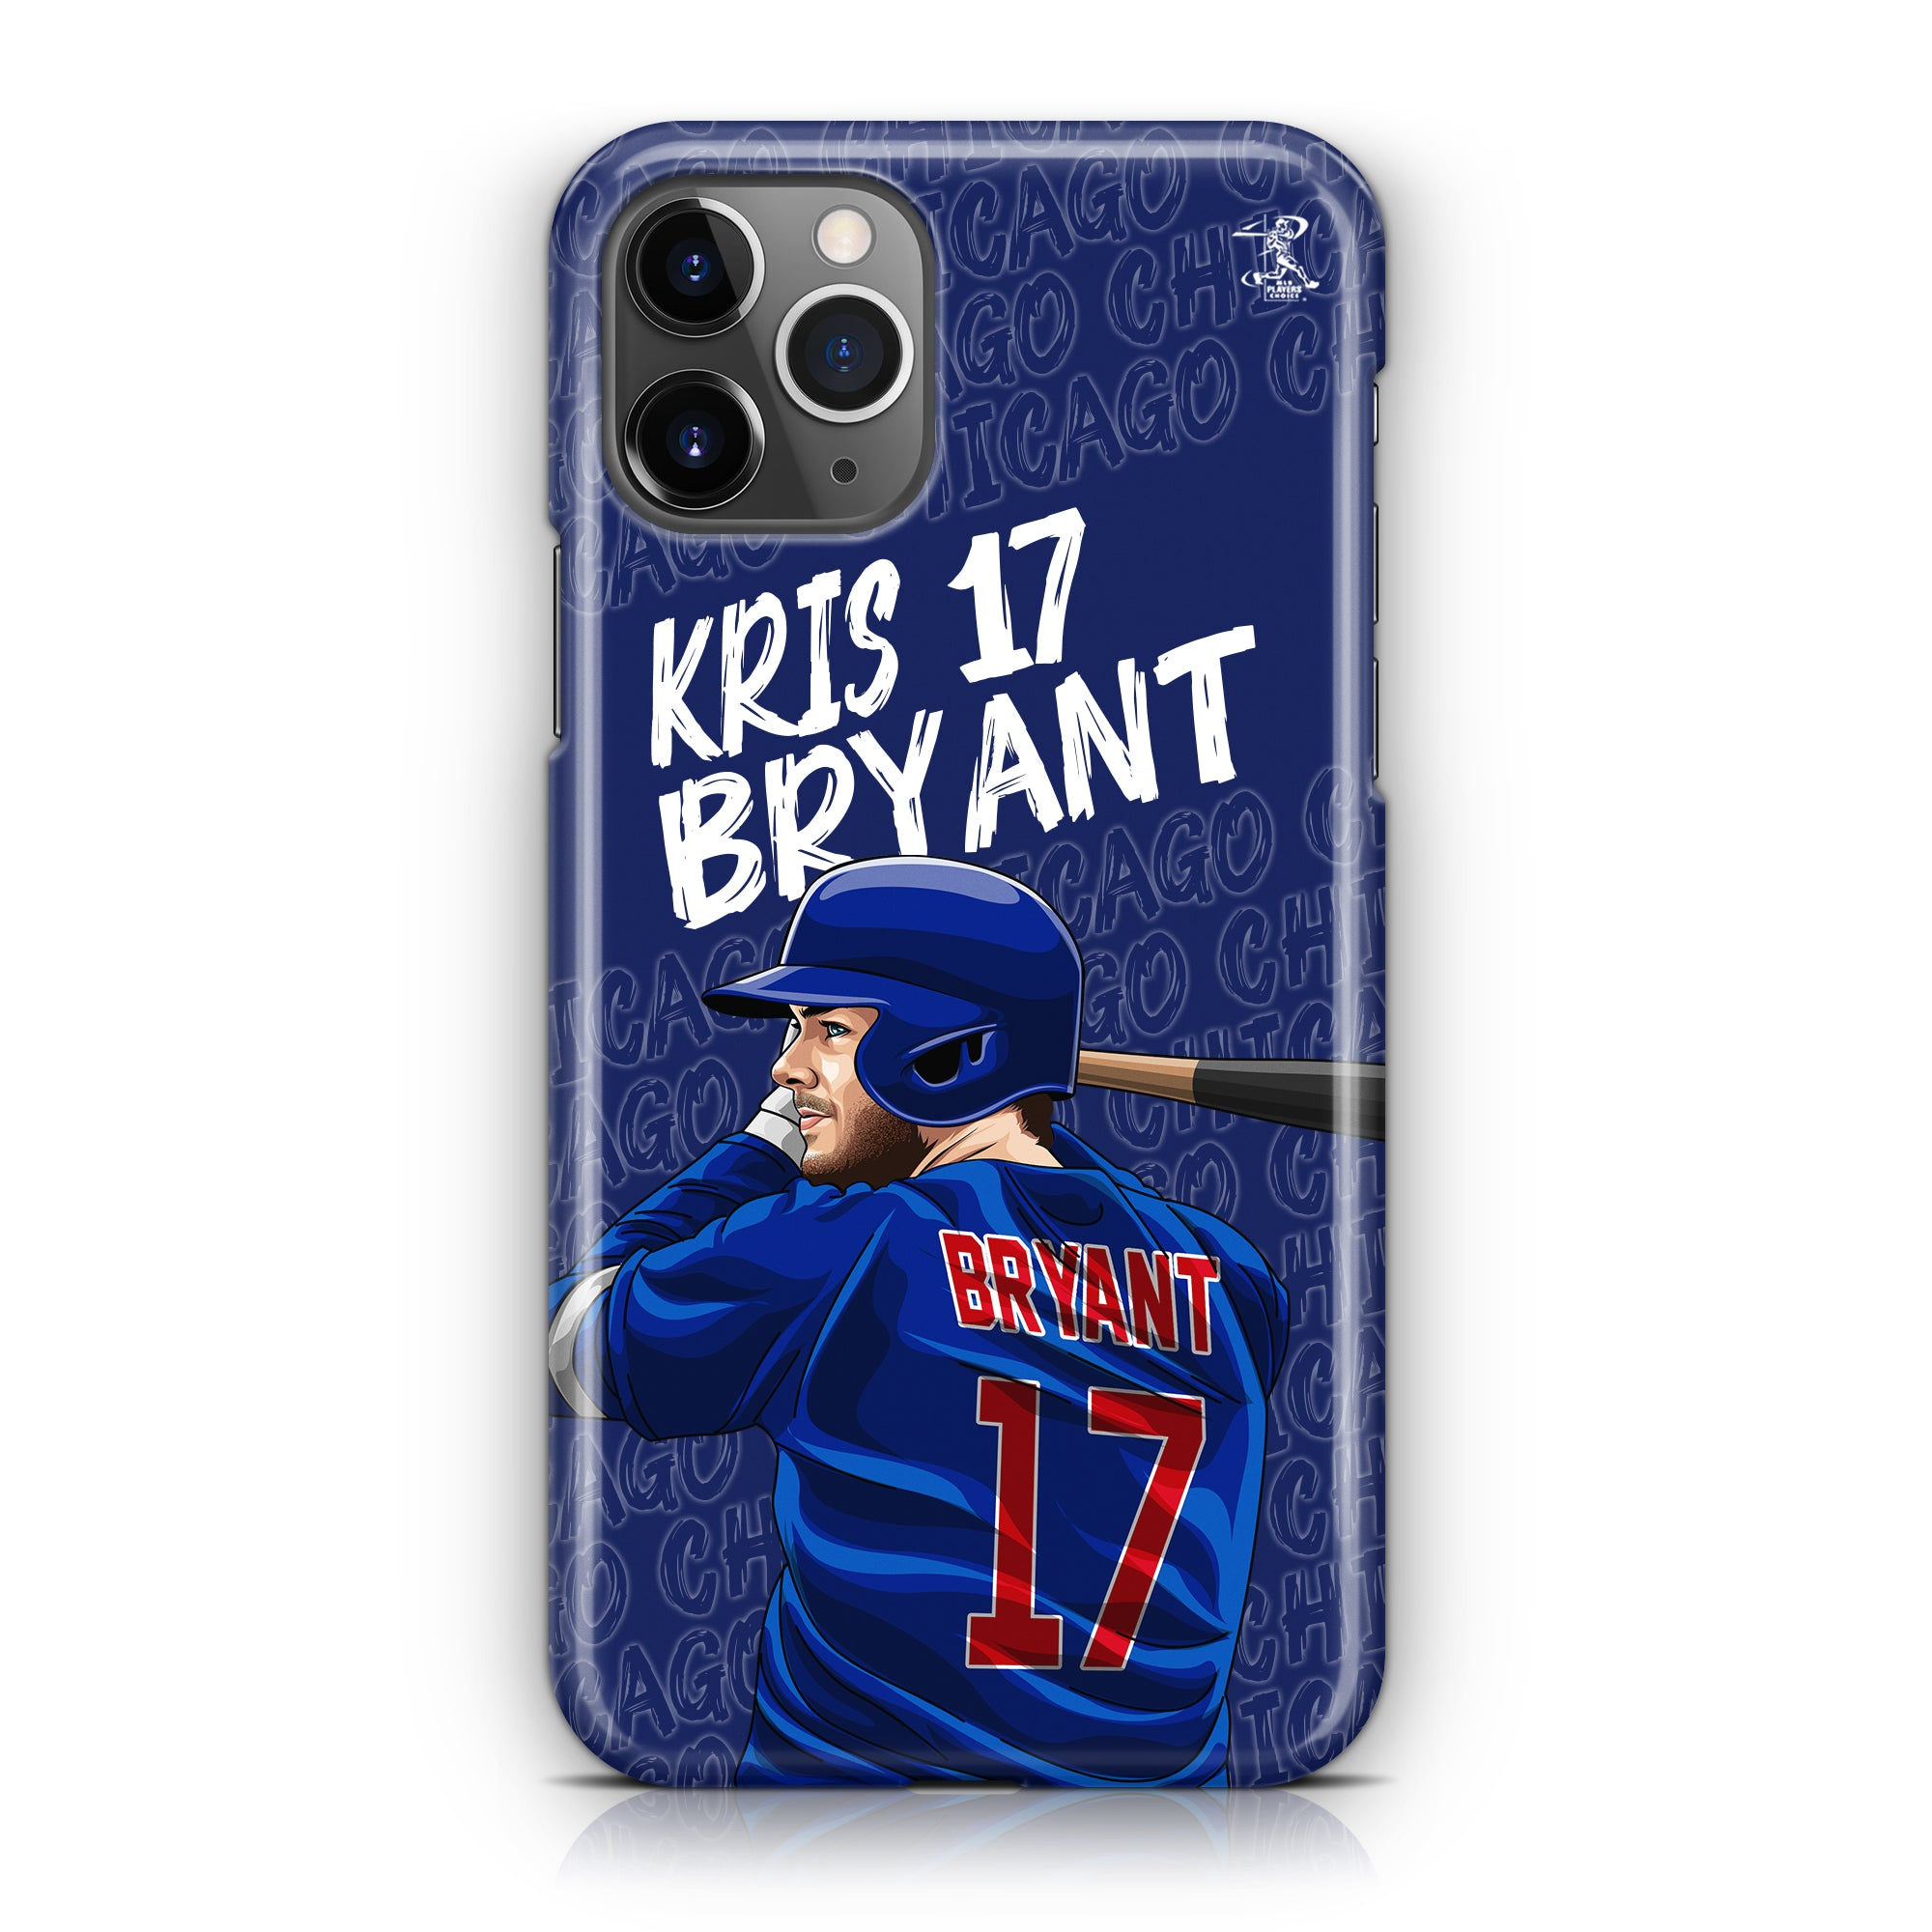 Bryant Star Series 2.0 Case